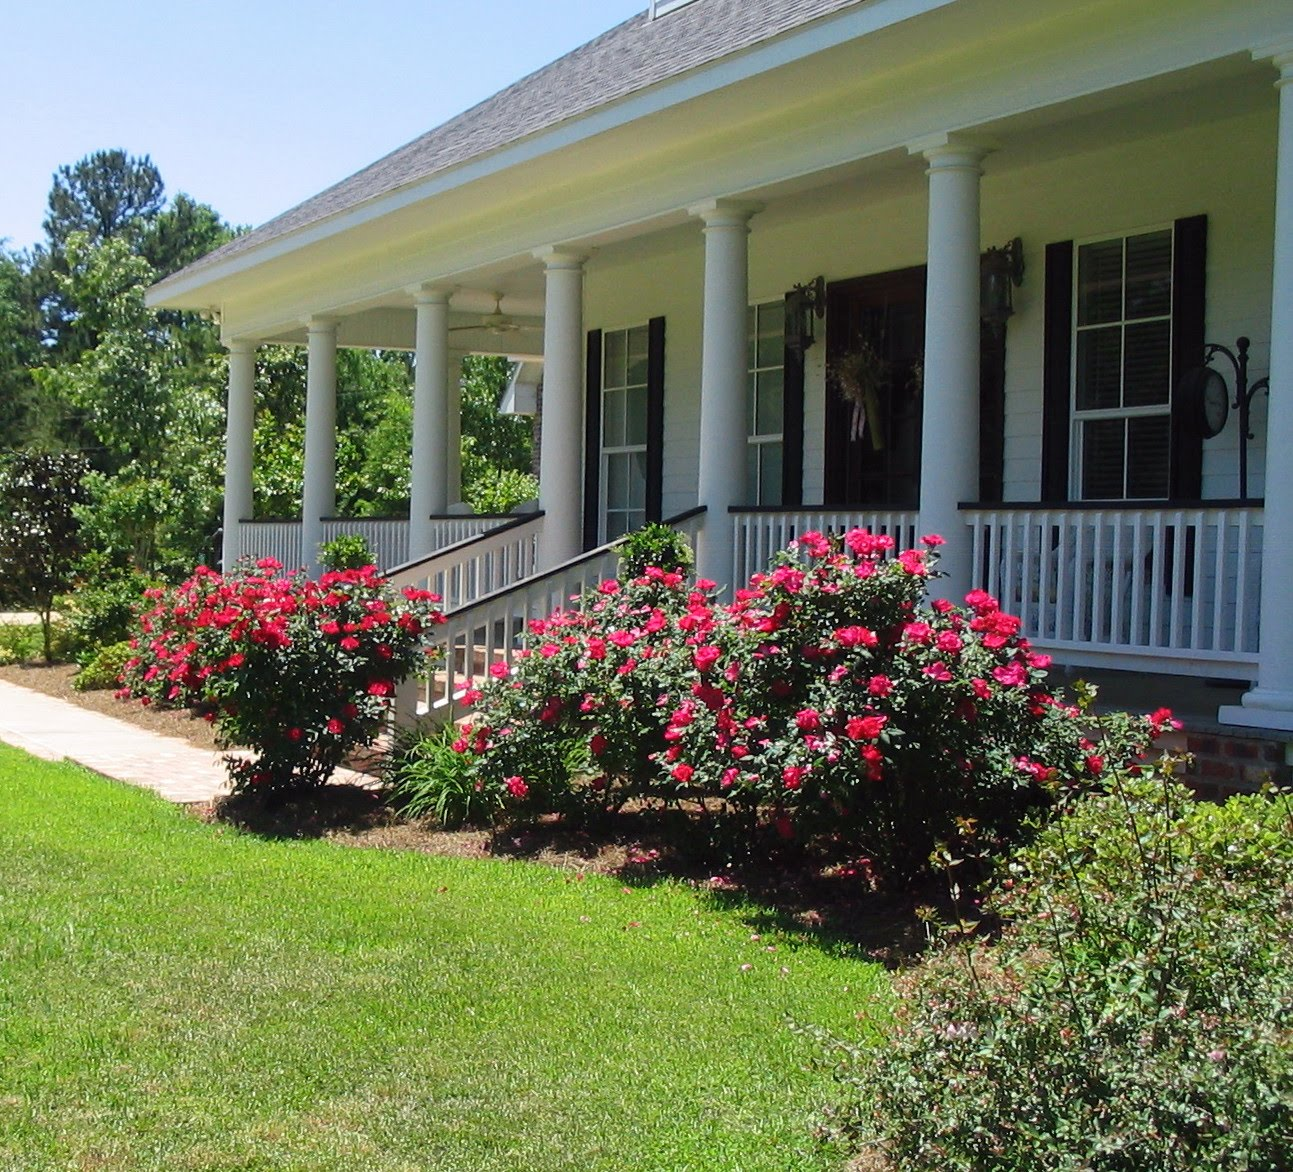 A southern belle dishes on decor outdoor wednesday 4 28 for How to plant bushes in front of house